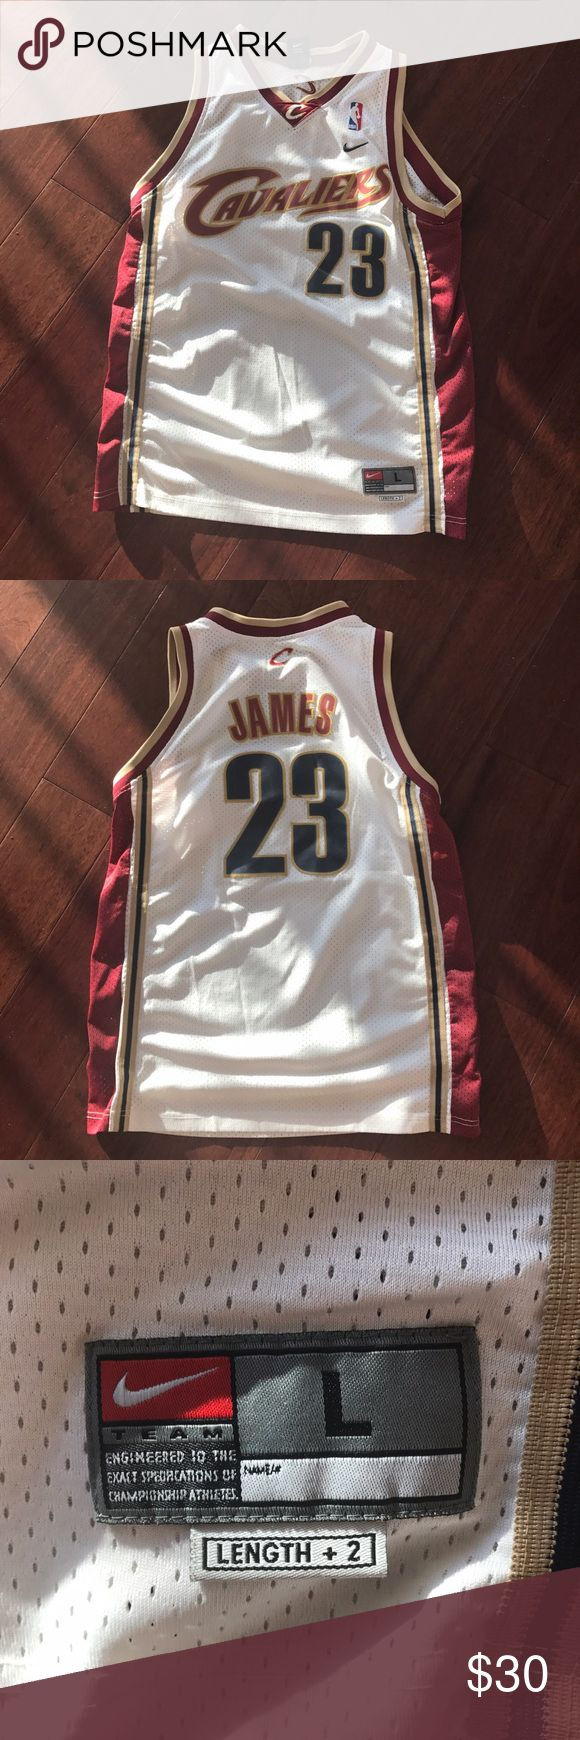 LeBron James OG cavs jersey This is from LeBron's first time on the cavs! Its a OG authentic rare stitched jersey from LeBron's first years in the NBA! Great shape! Youth large or it fit women's small or medium! Go cavaliers show your support for game 4! Nike Tops Muscle Tees